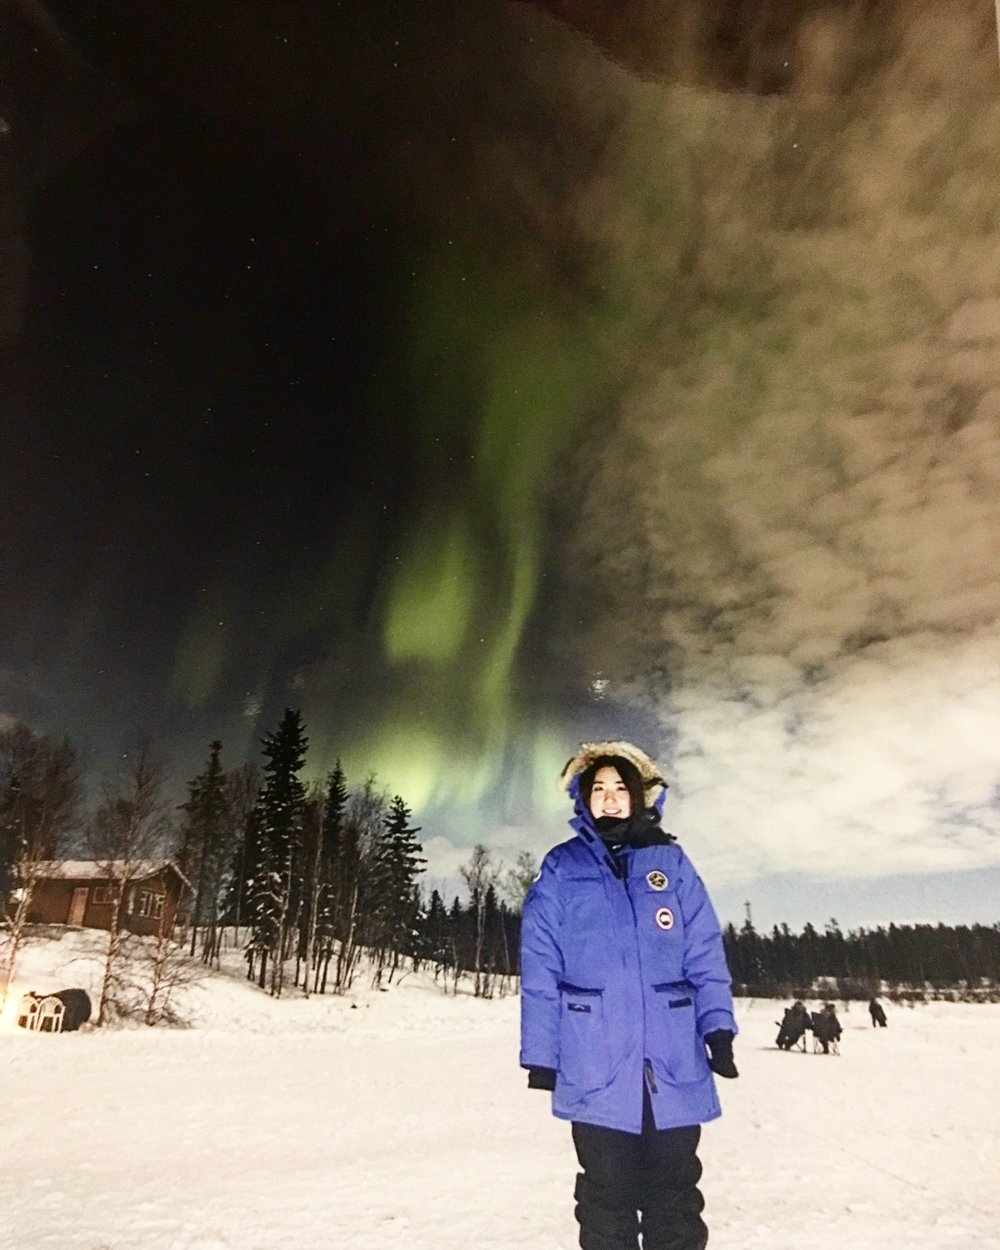 Claire witnessing Aurora in Yellowknife, Canada